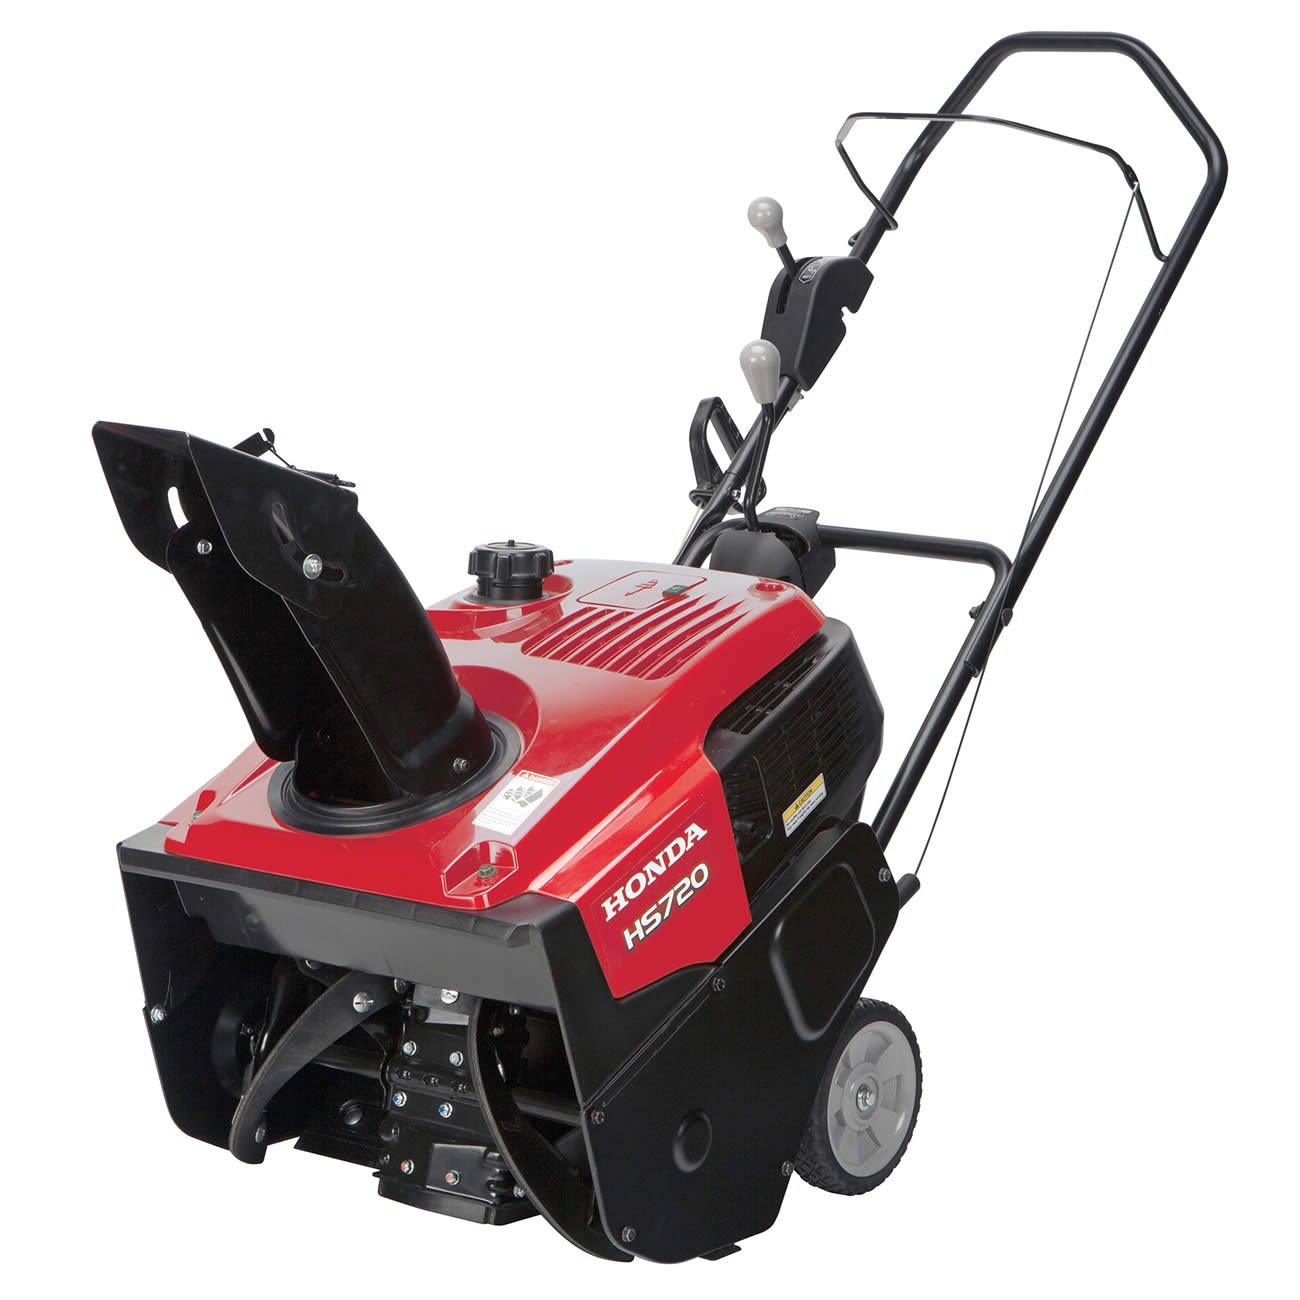 Honda Power Equipment HS720AA 20'' 187cc Single-Stage Snow Blower with Dual Chute Control by Honda